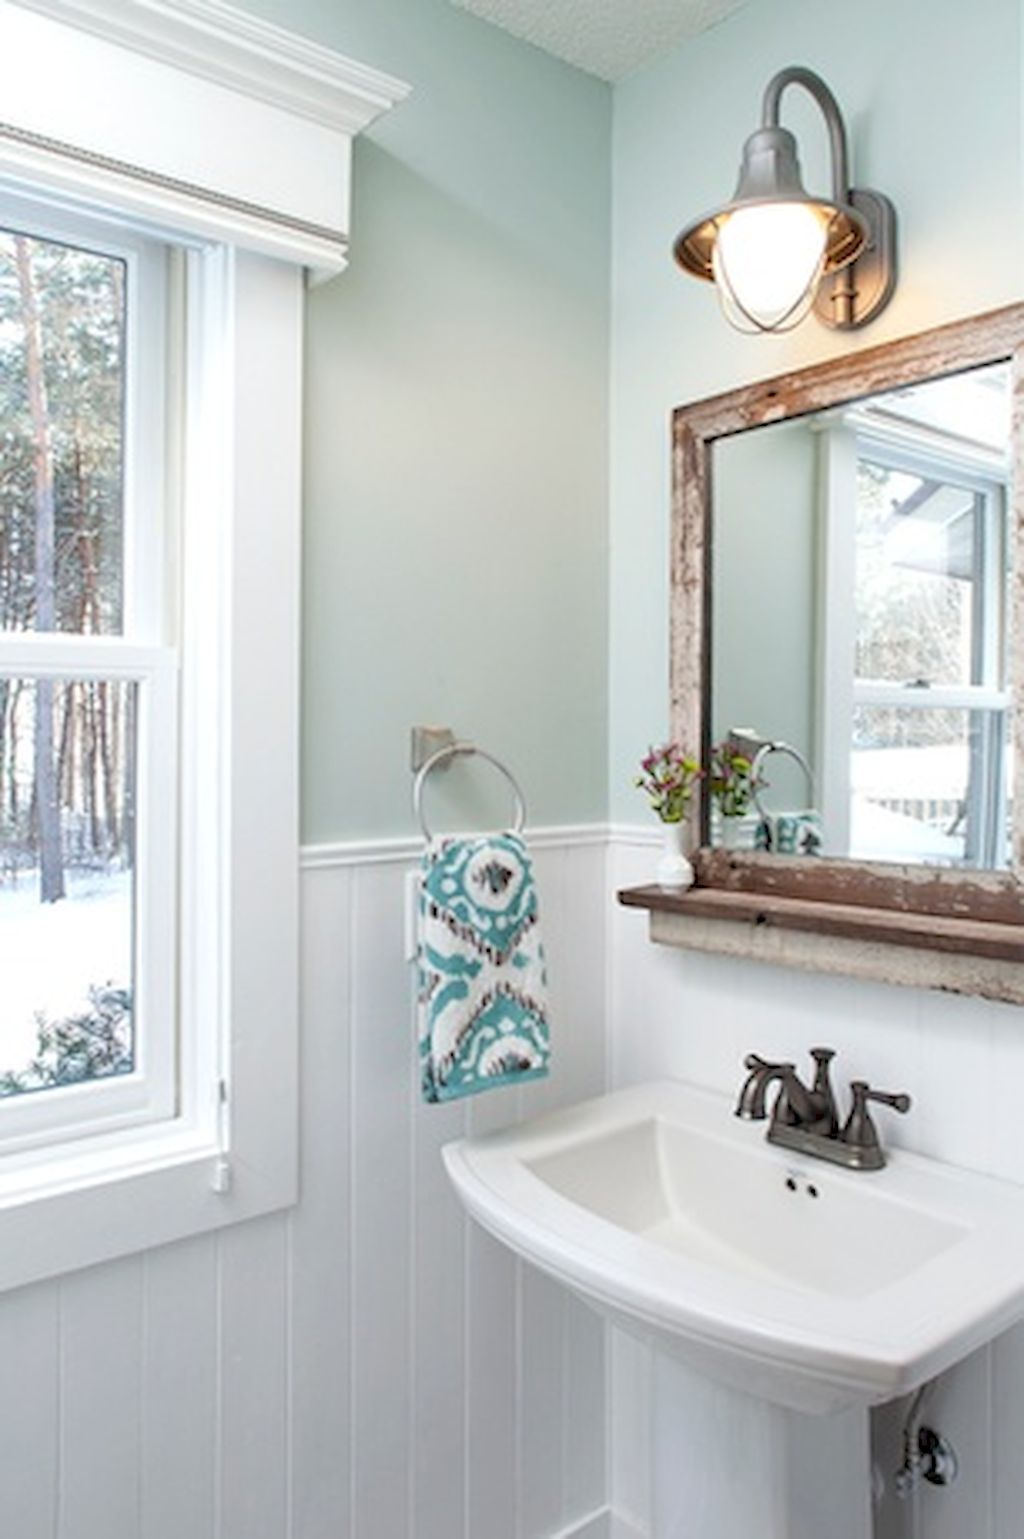 60 Cool Farmhouse Powder Room Design Ideas With Rustic #modernpowderrooms